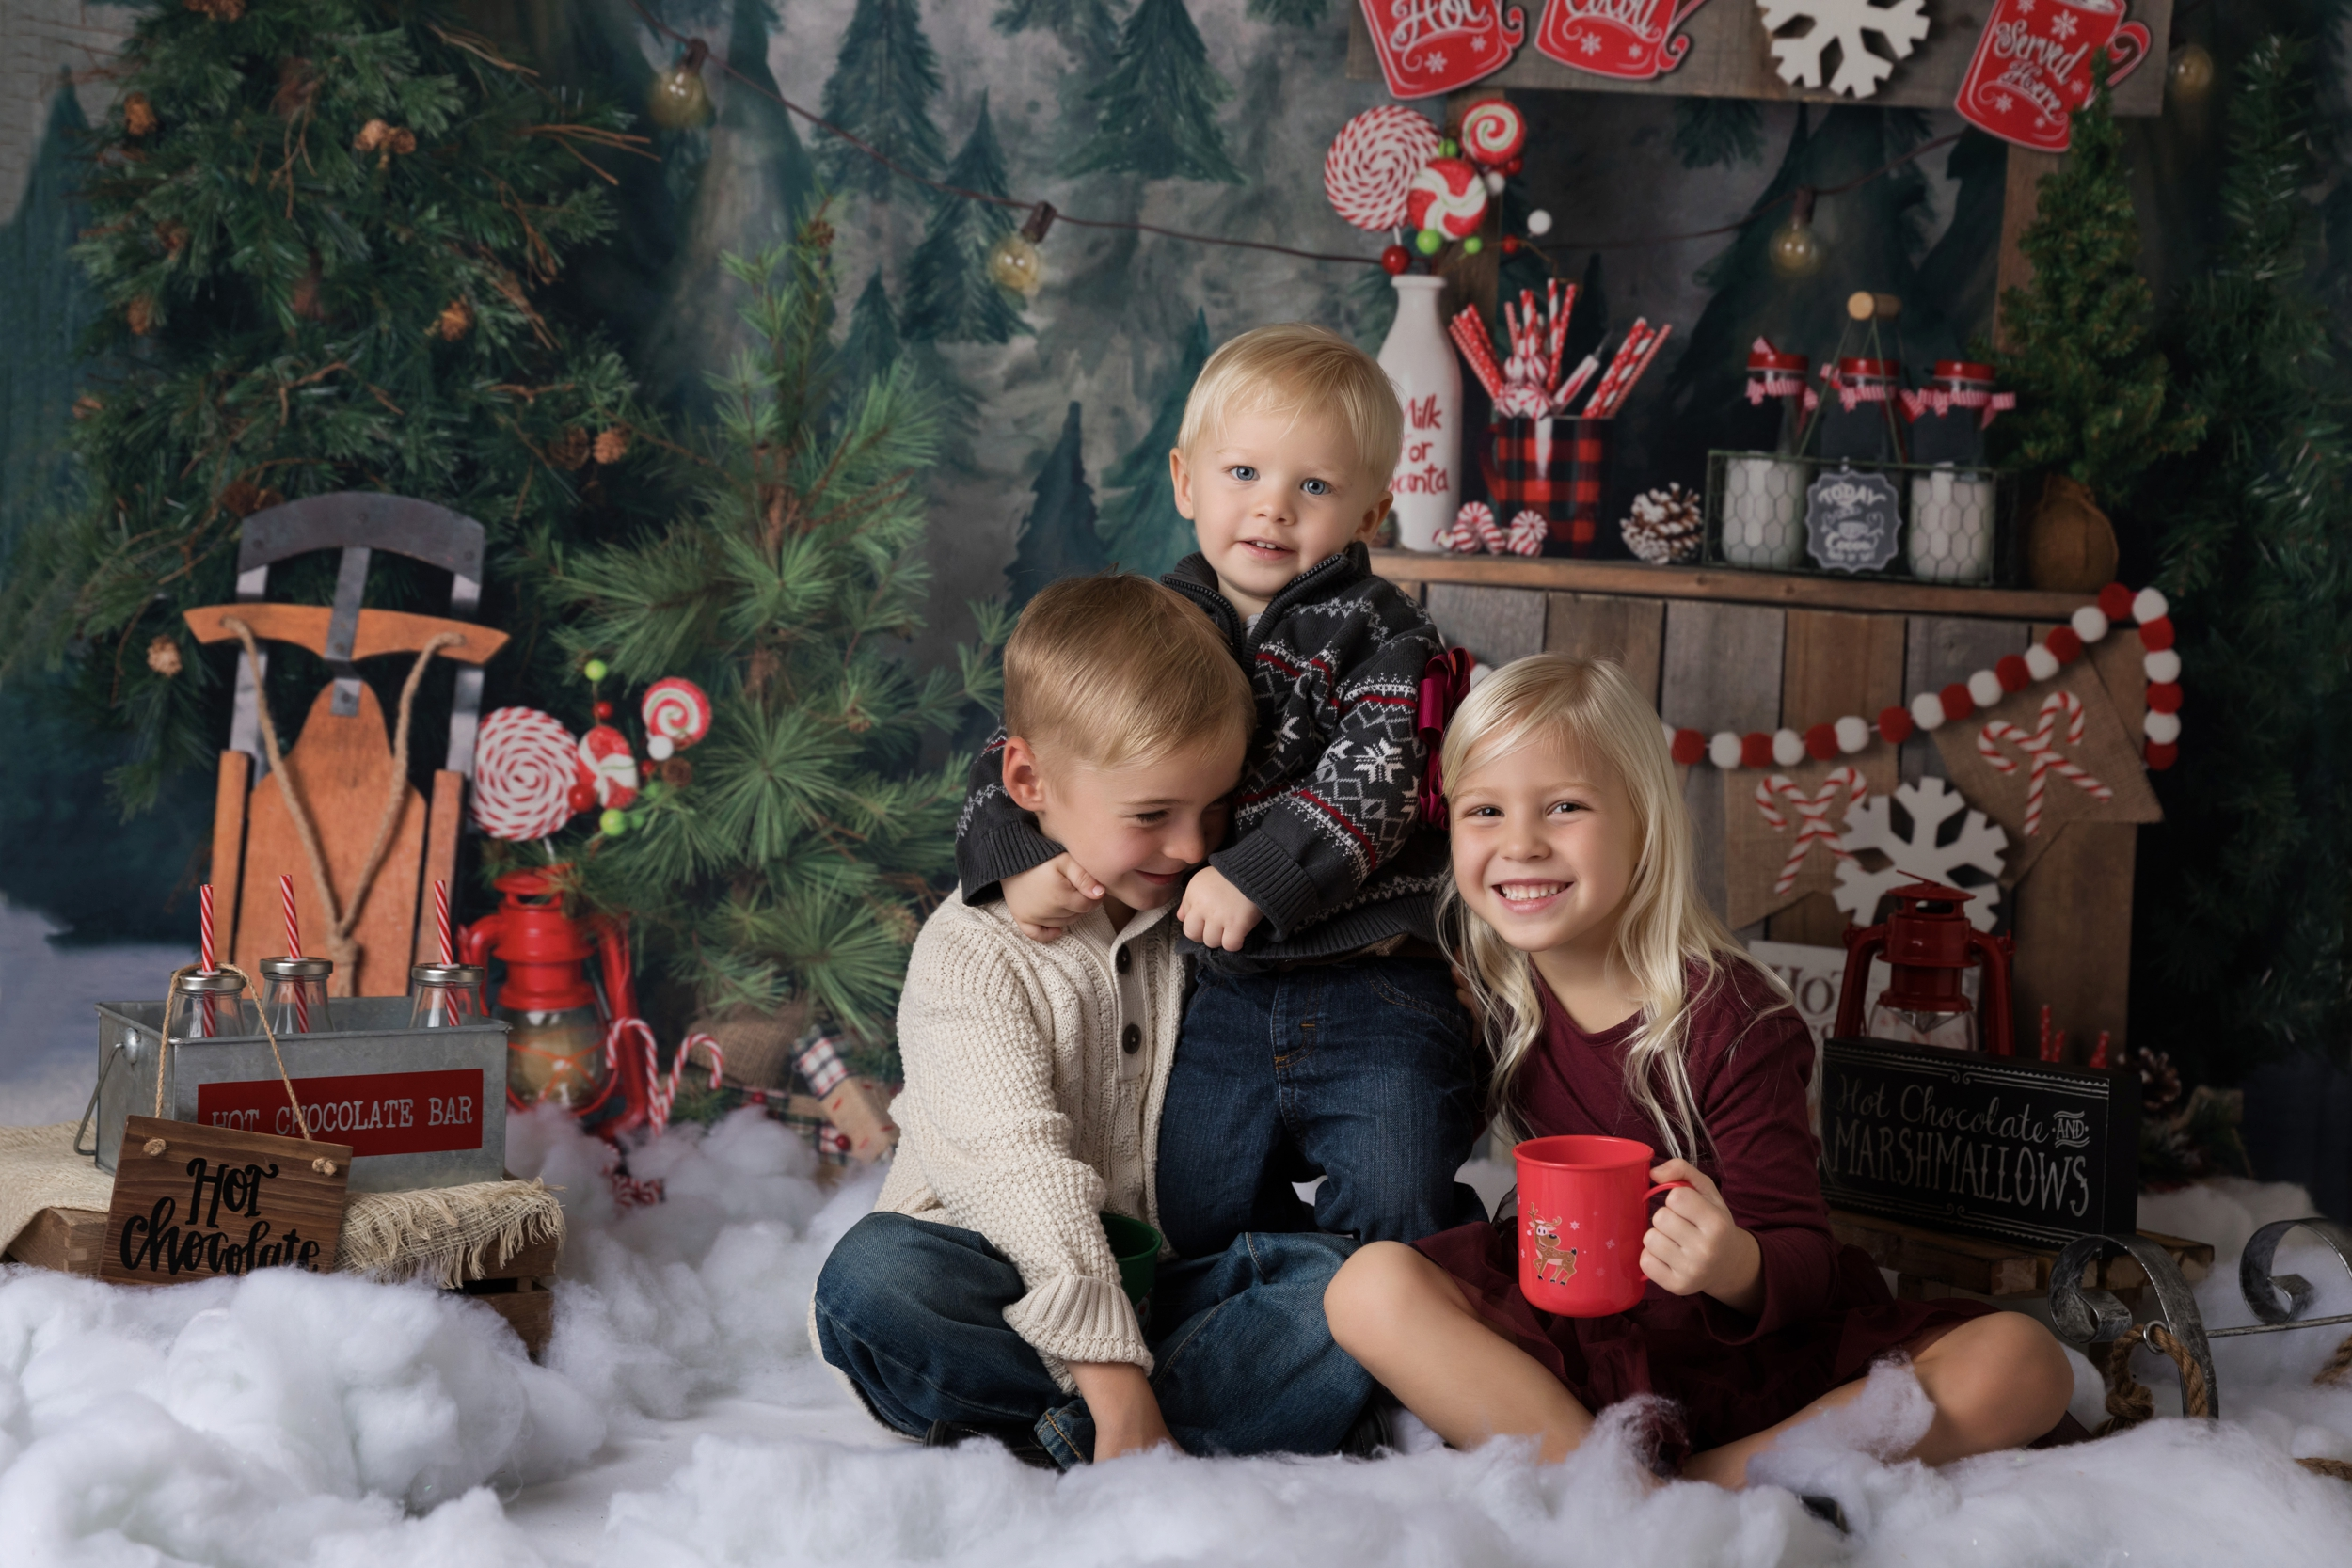 Christmas-Mini-Sessions-Jessica-Doffing-Photography_0018.jpg